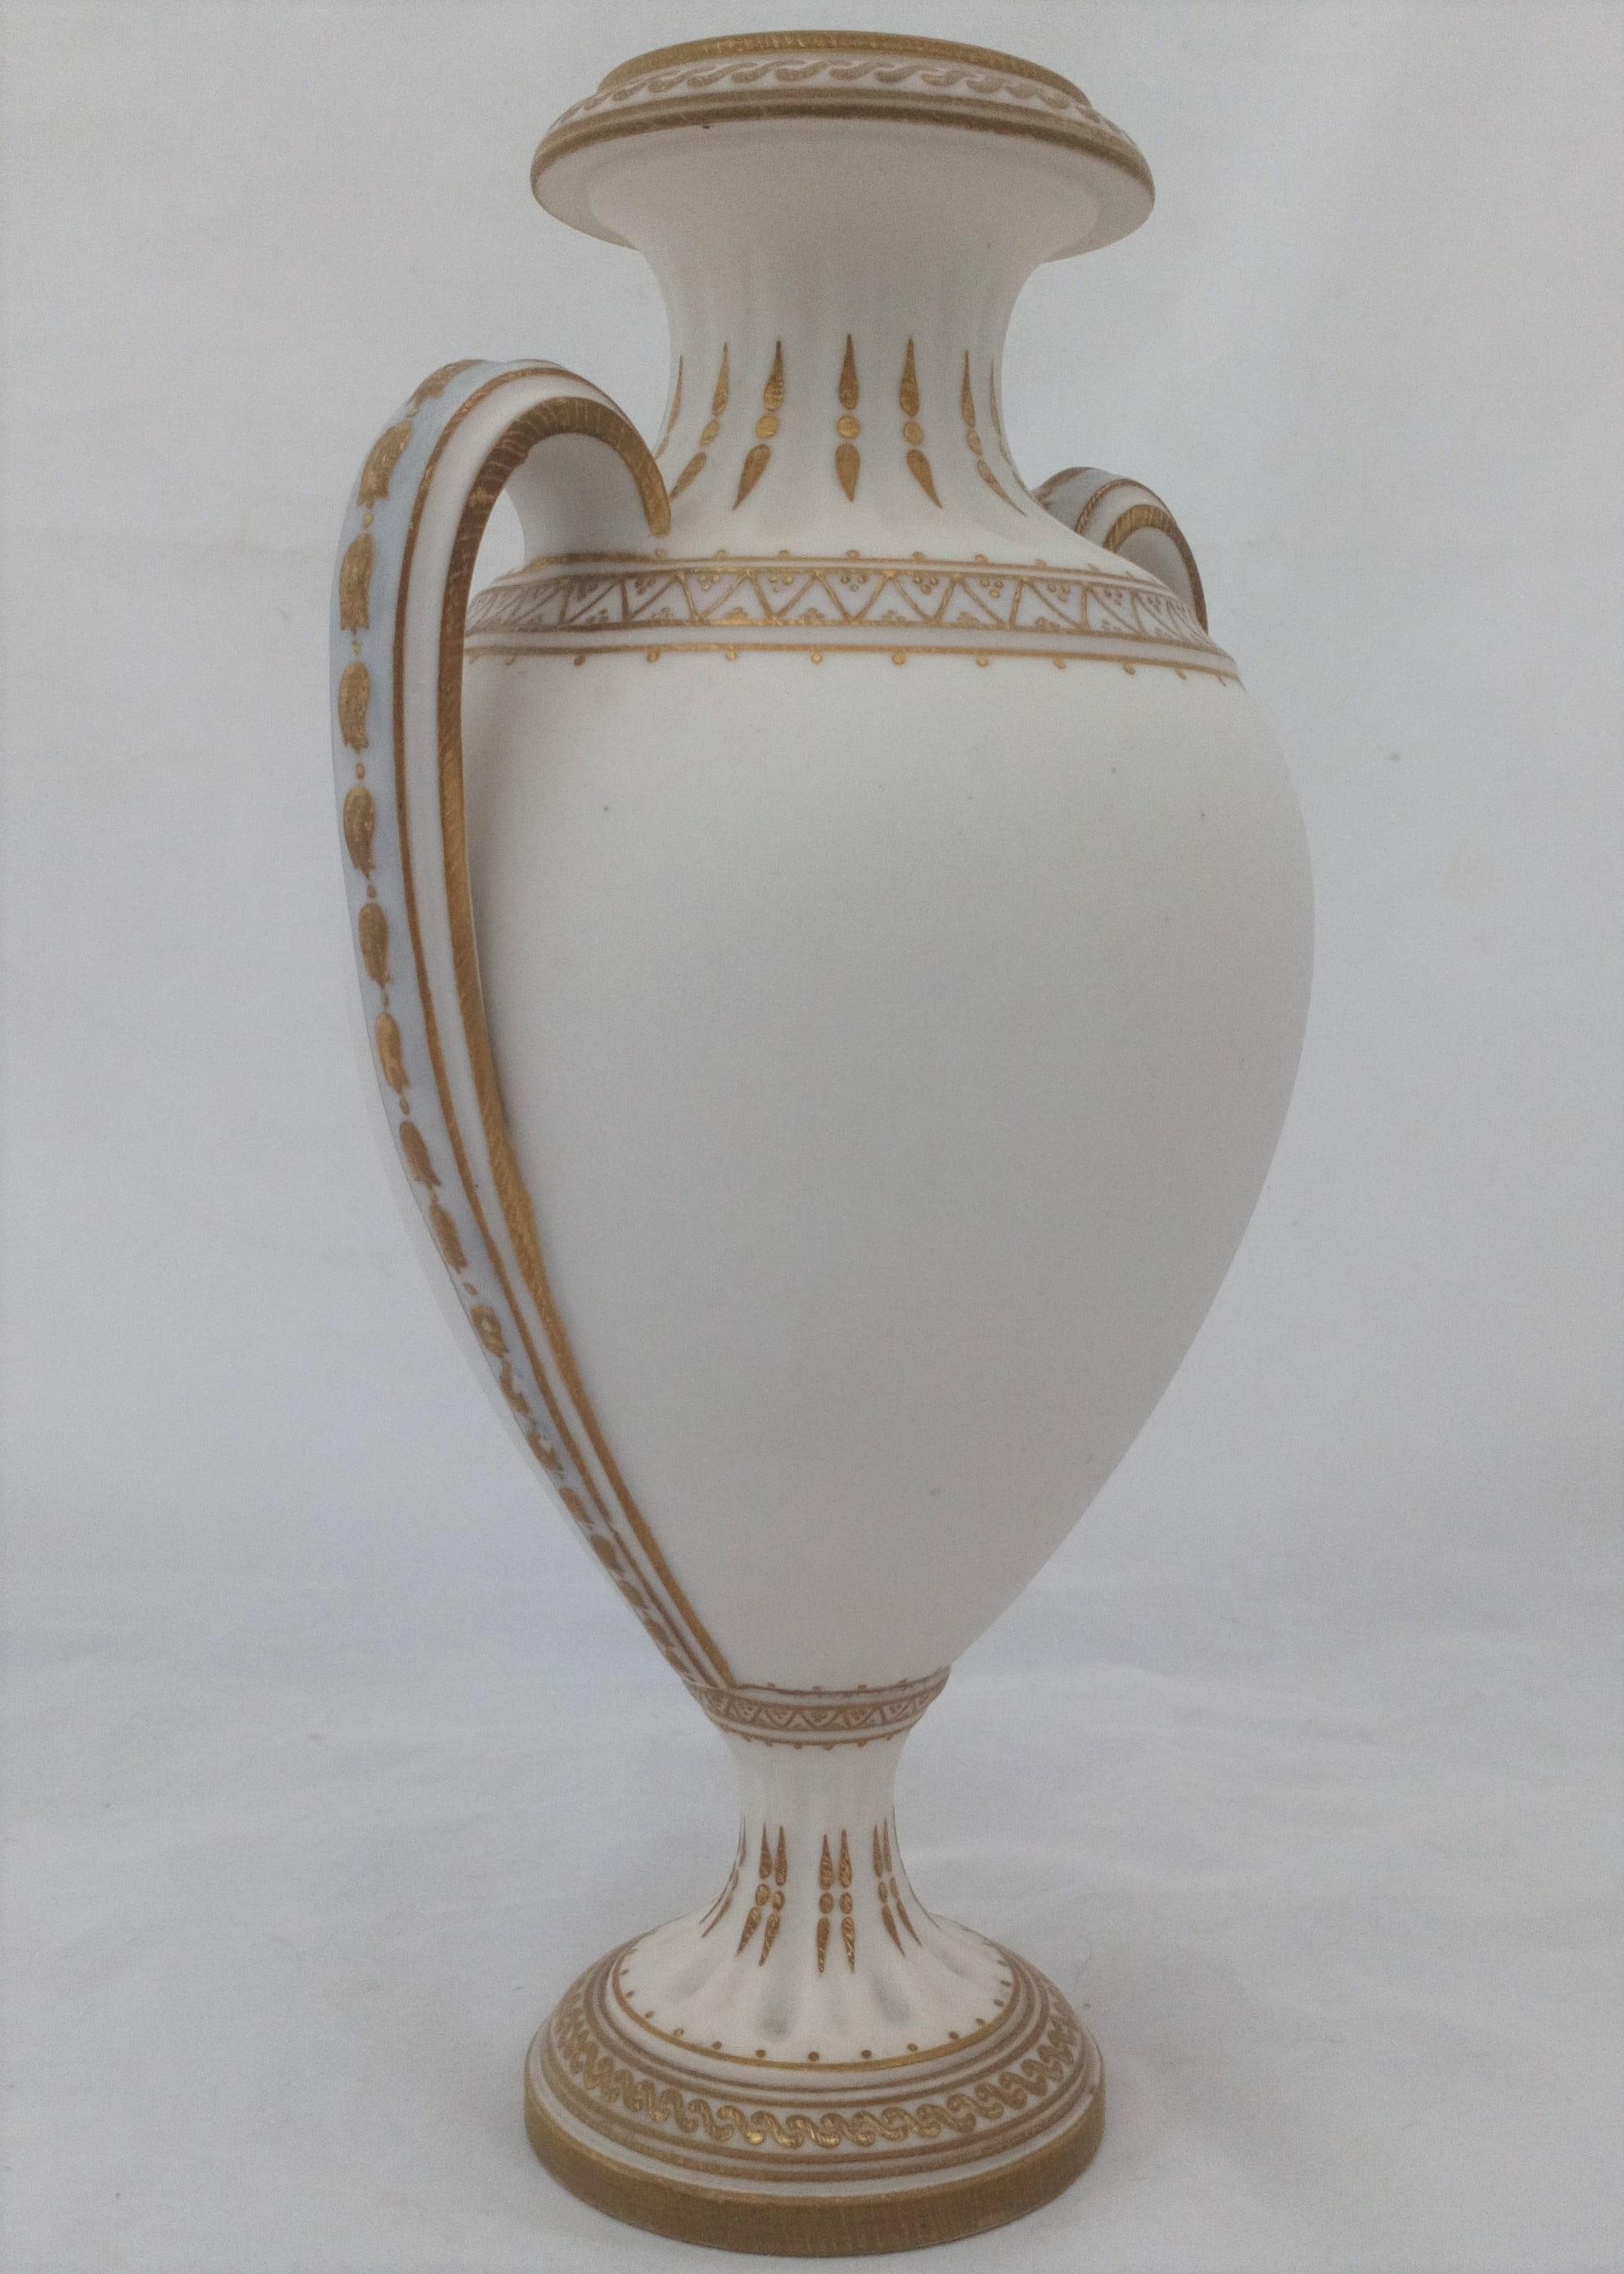 An antique Ceramic and Crystal Palace Art Union parian porcelain vase beautifully hand painted classical Roman figures impressed Hunter and dated 1881